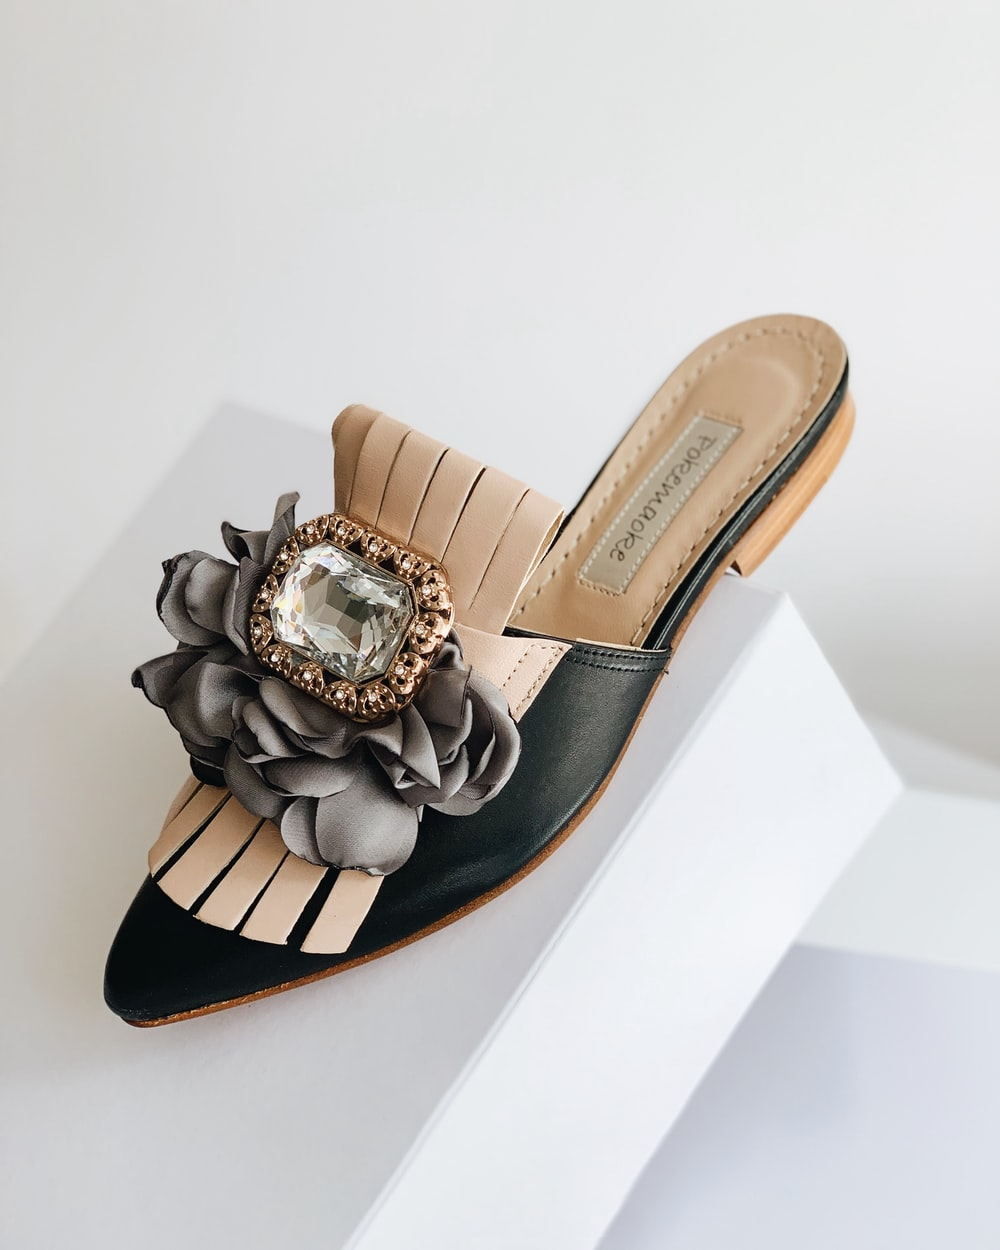 black and brown leather half shoe on white box